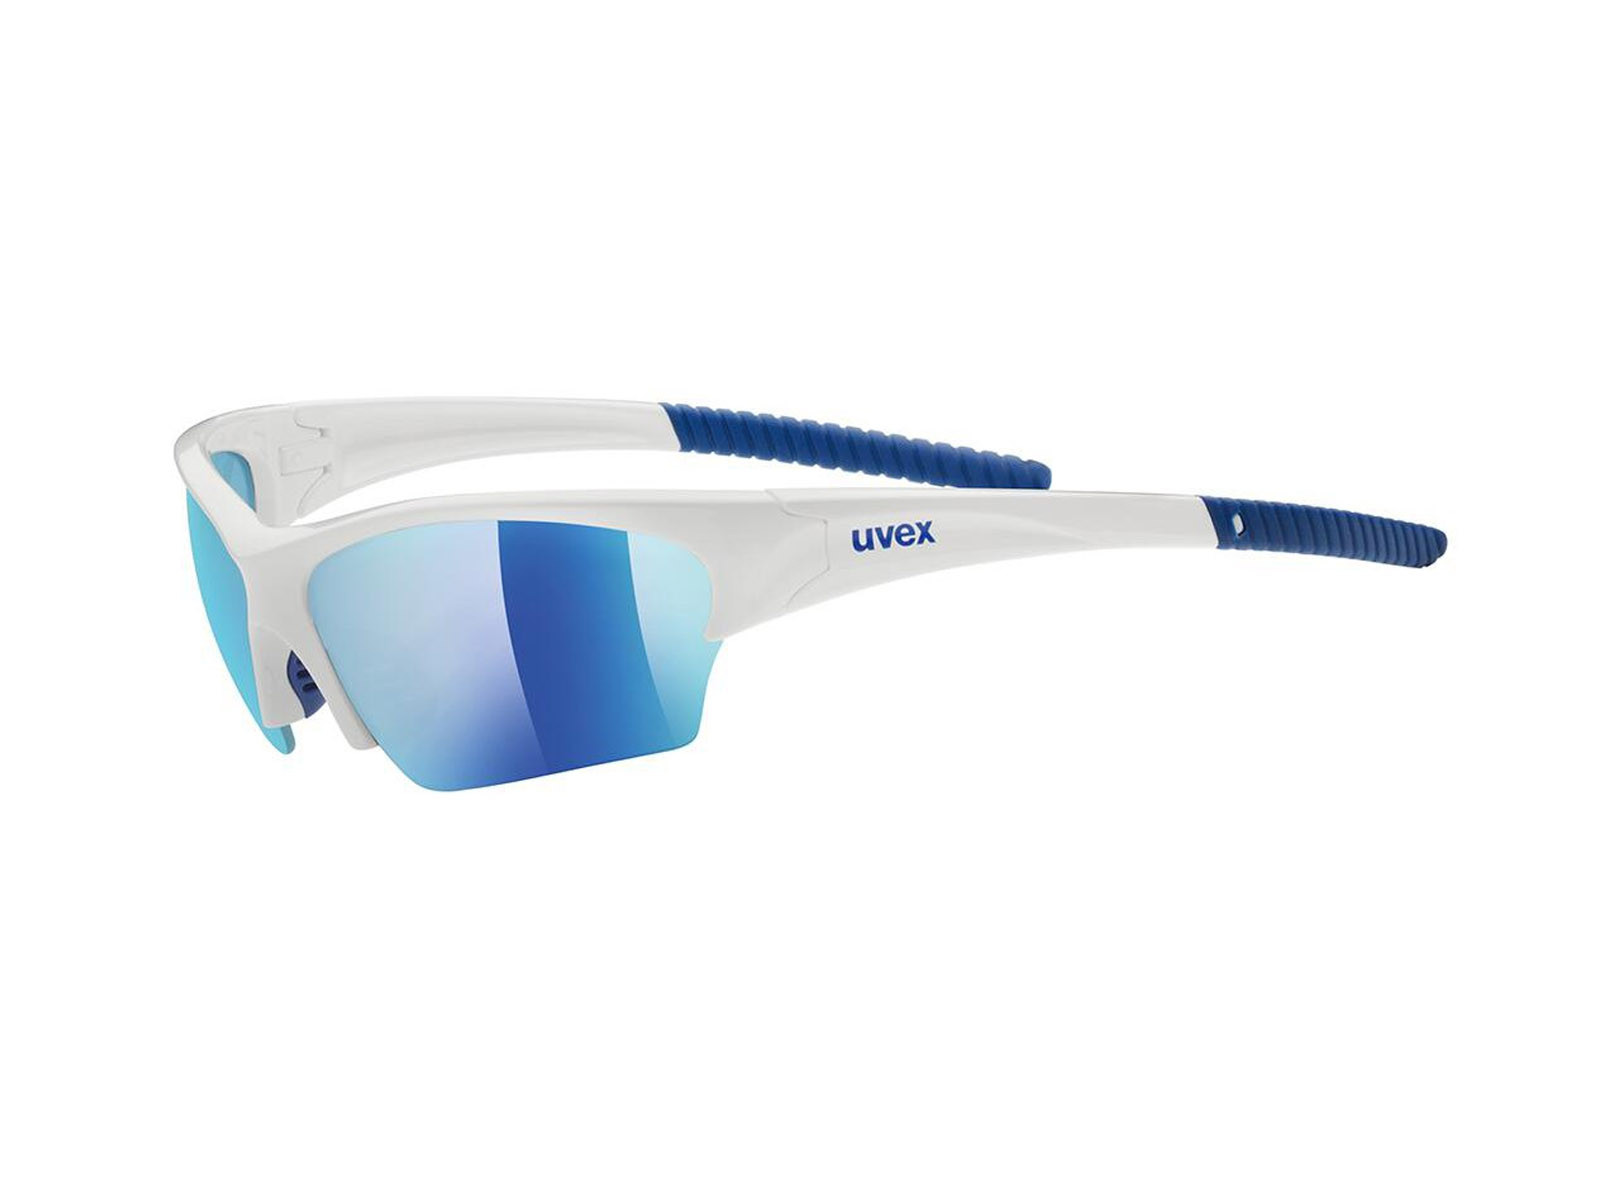 Uvex Sunsation - White and Blue